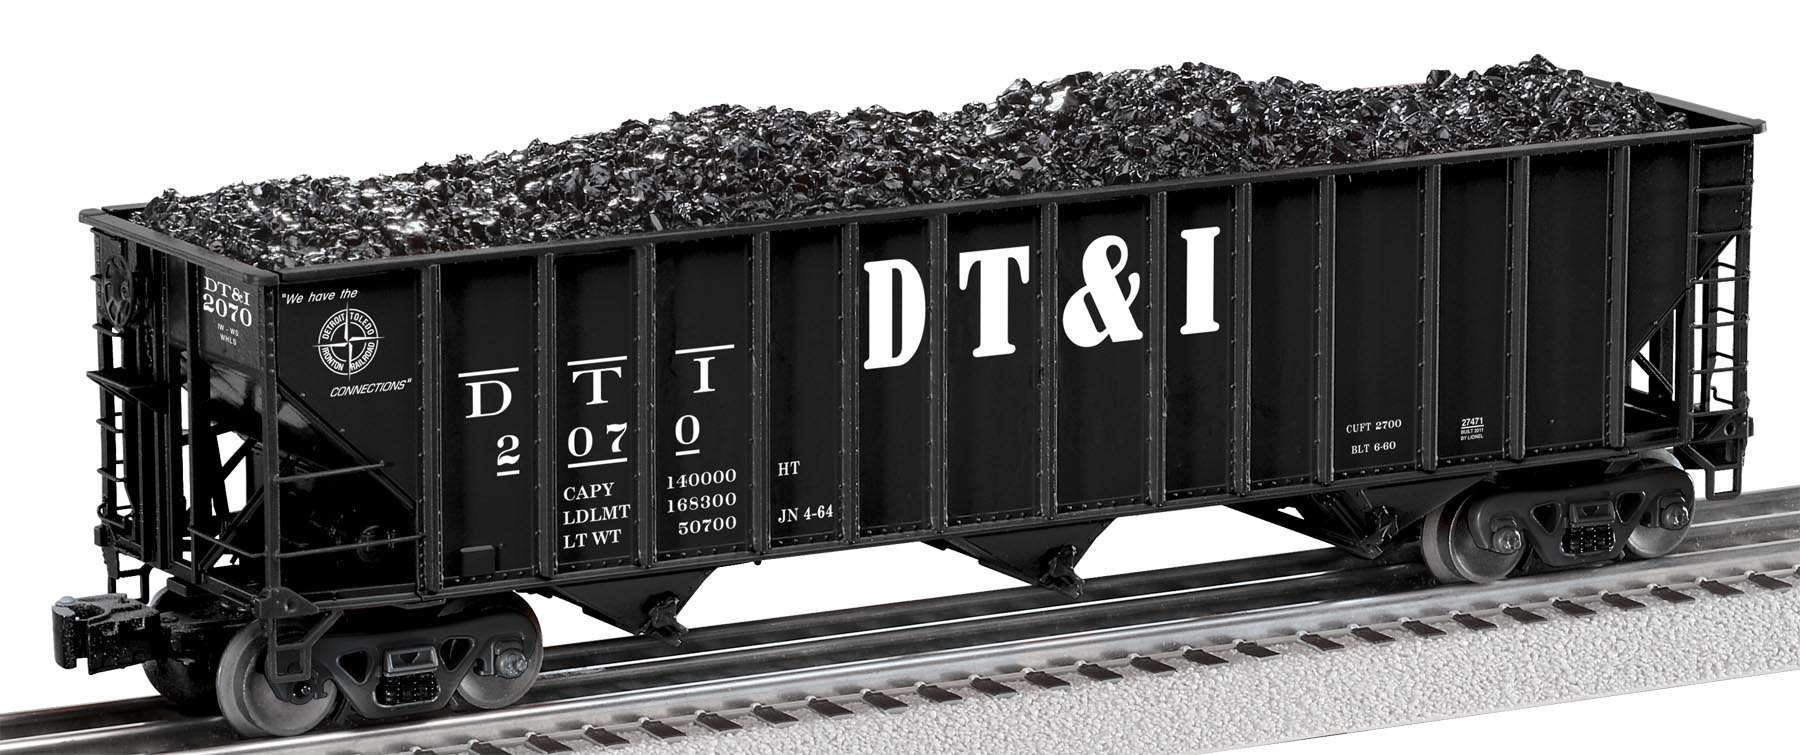 6-27471 DT&I 3-BAY DIE-CAST COAL HOPPER #2070